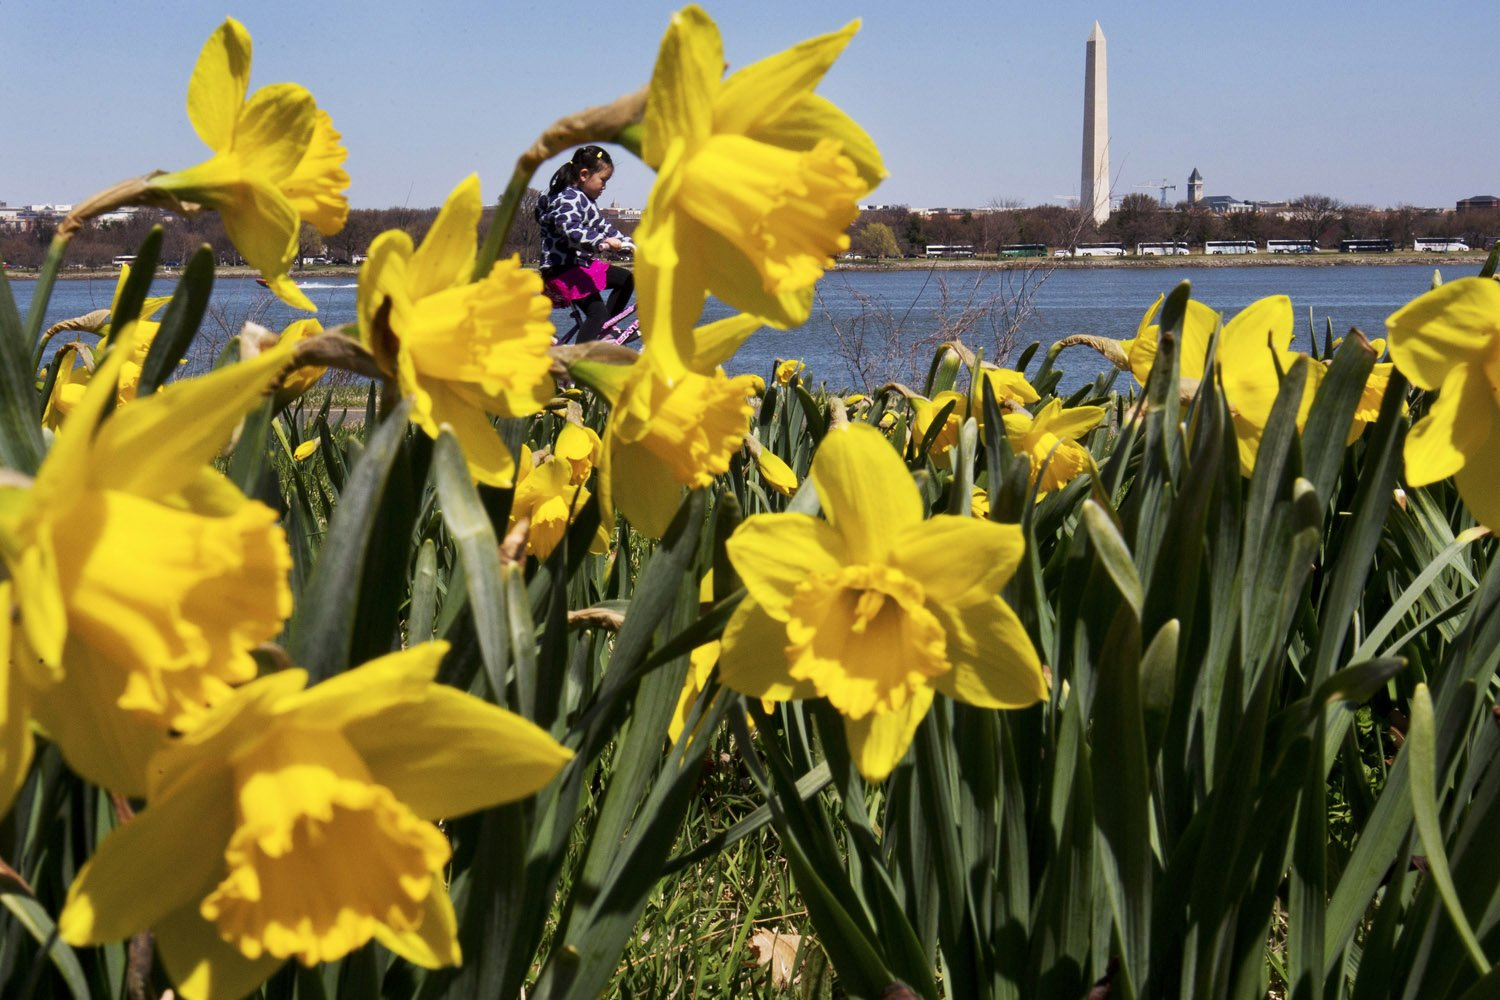 Garden expert Mike McGrath answers questions about moving spring bulbs, mulching around an oak tree and gifts to get dad for Father's Day. (AP Photo/Jacquelyn Martin)